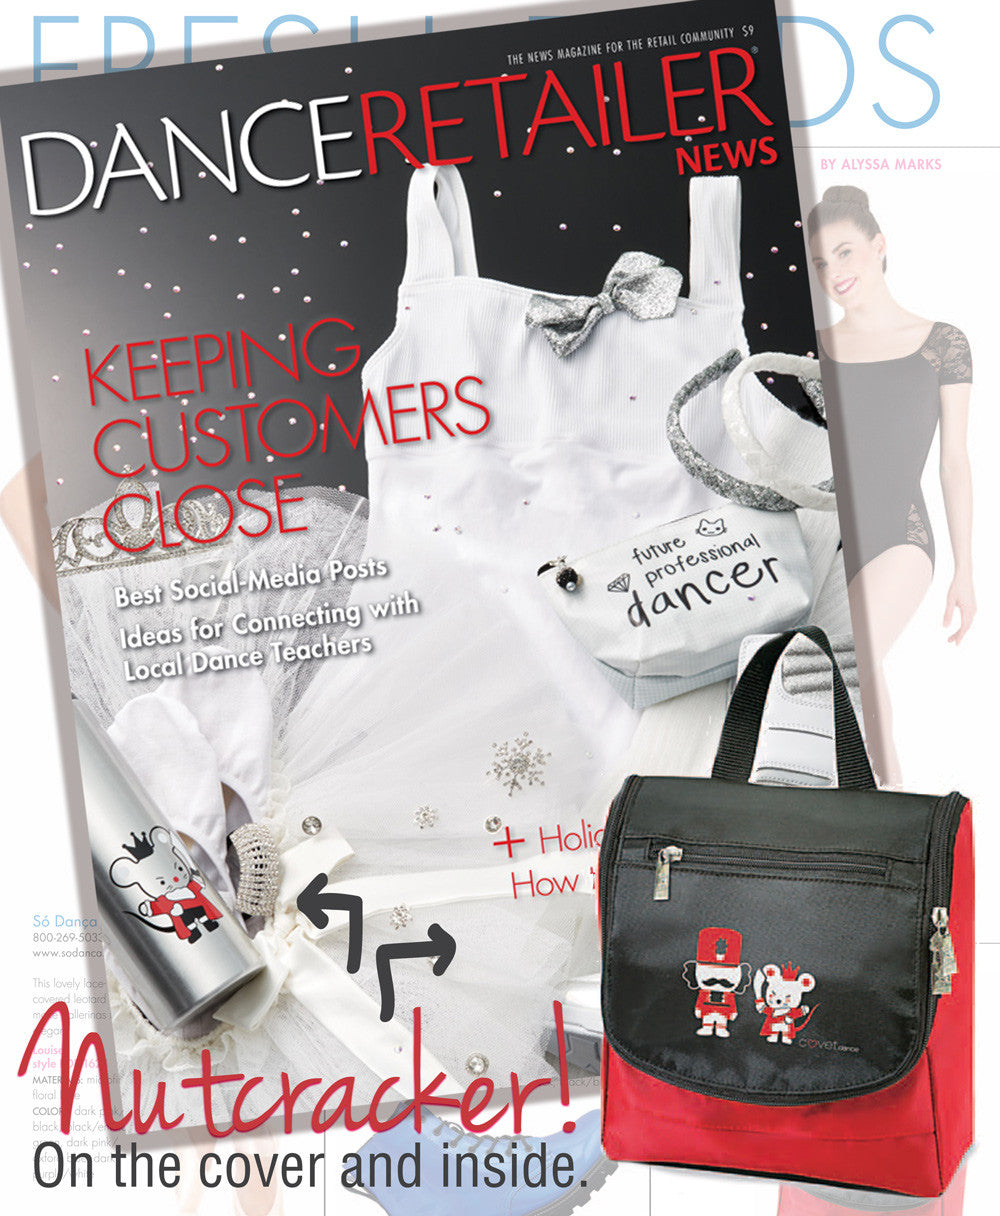 Nutcracker and Mouse King Made The Cover (and inside) of Dance Retailer News